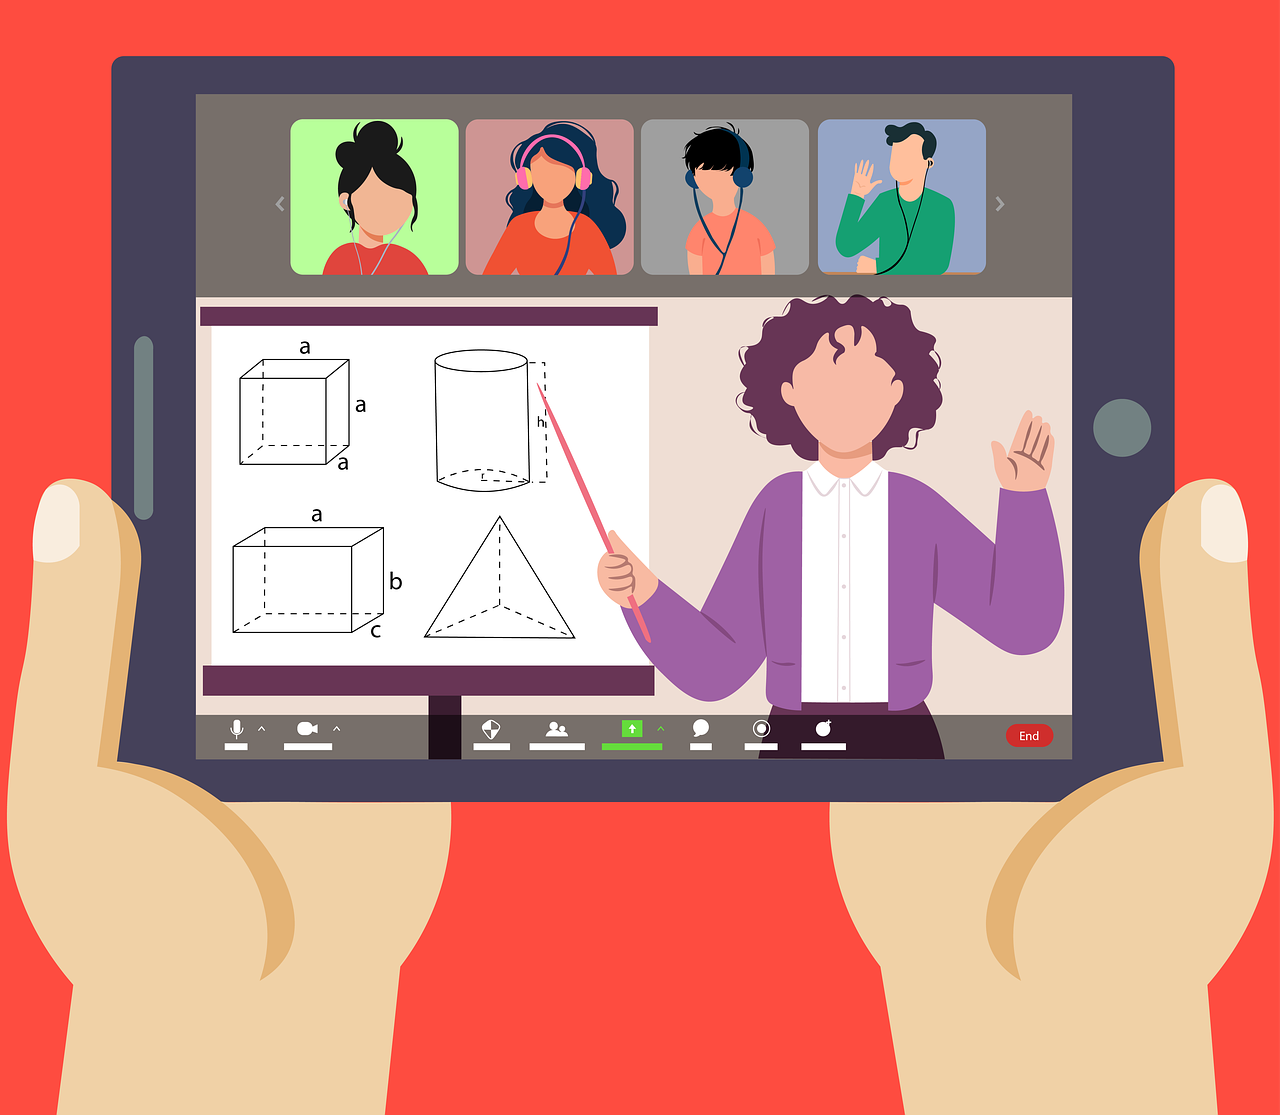 The content in eLearning needs to be short, clear and particular